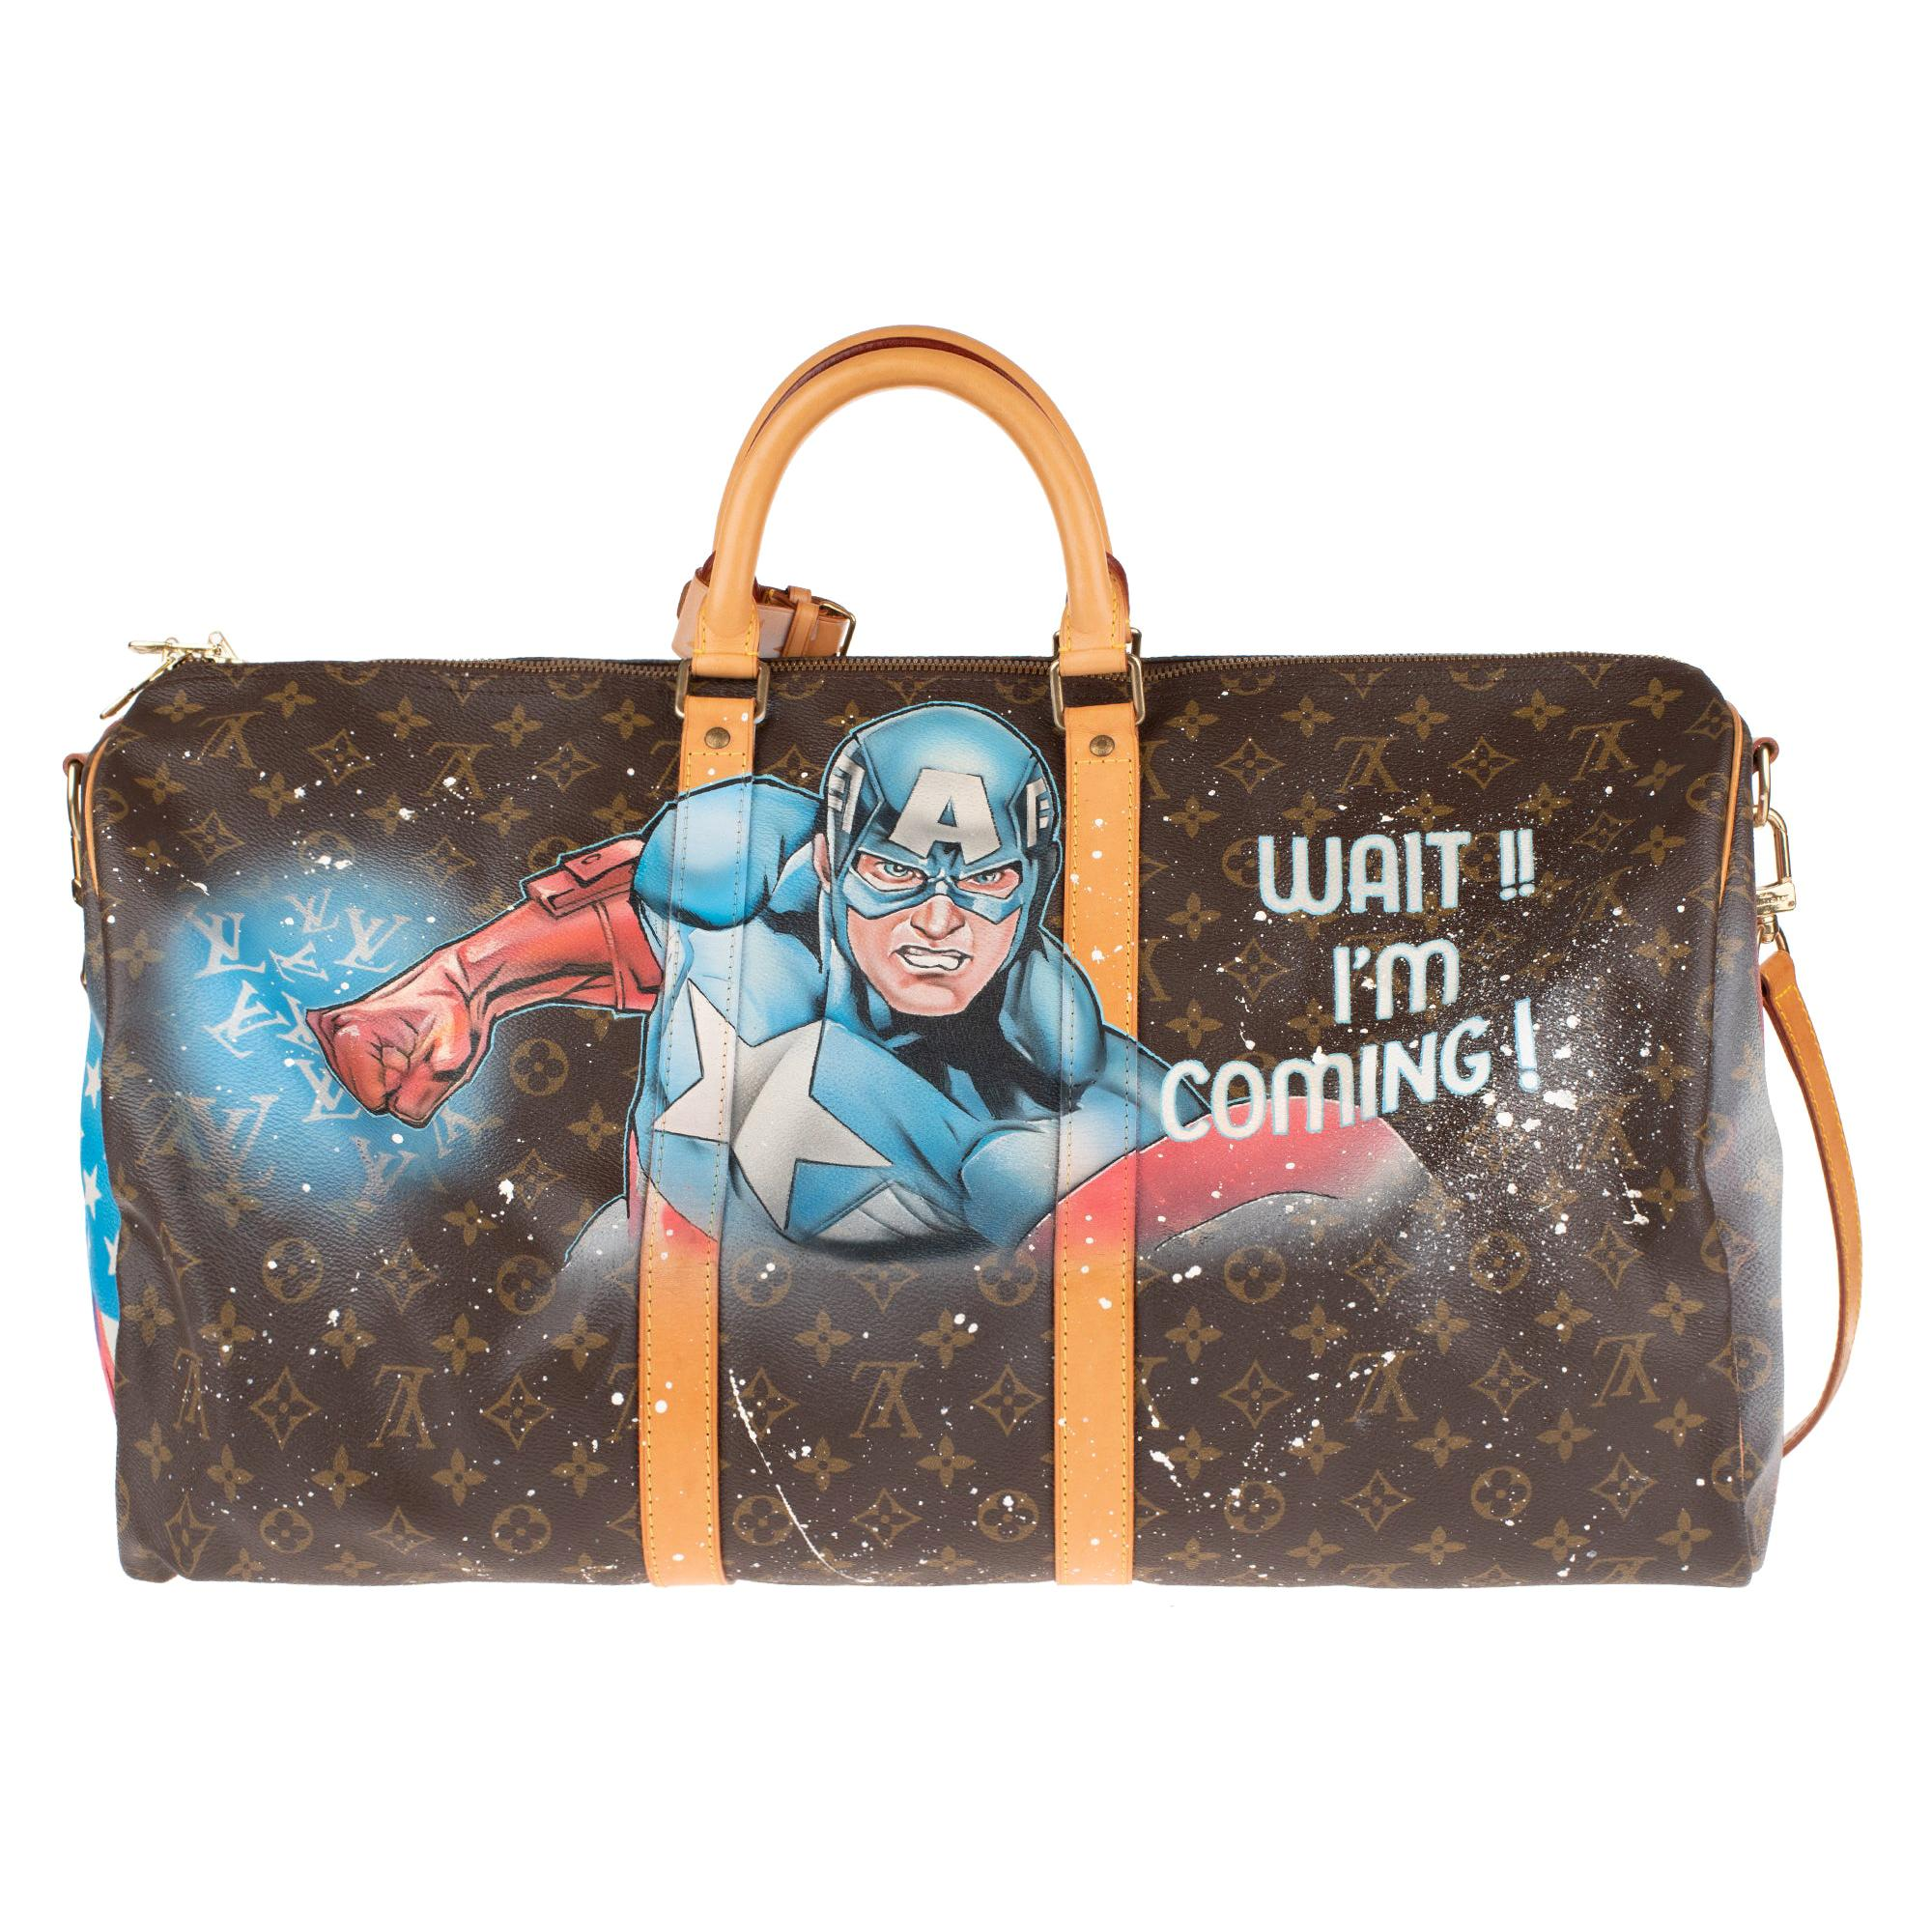 """Louis Vuitton Keepall 55 strap travel bag customized """"Captain America"""" by Patbo!"""